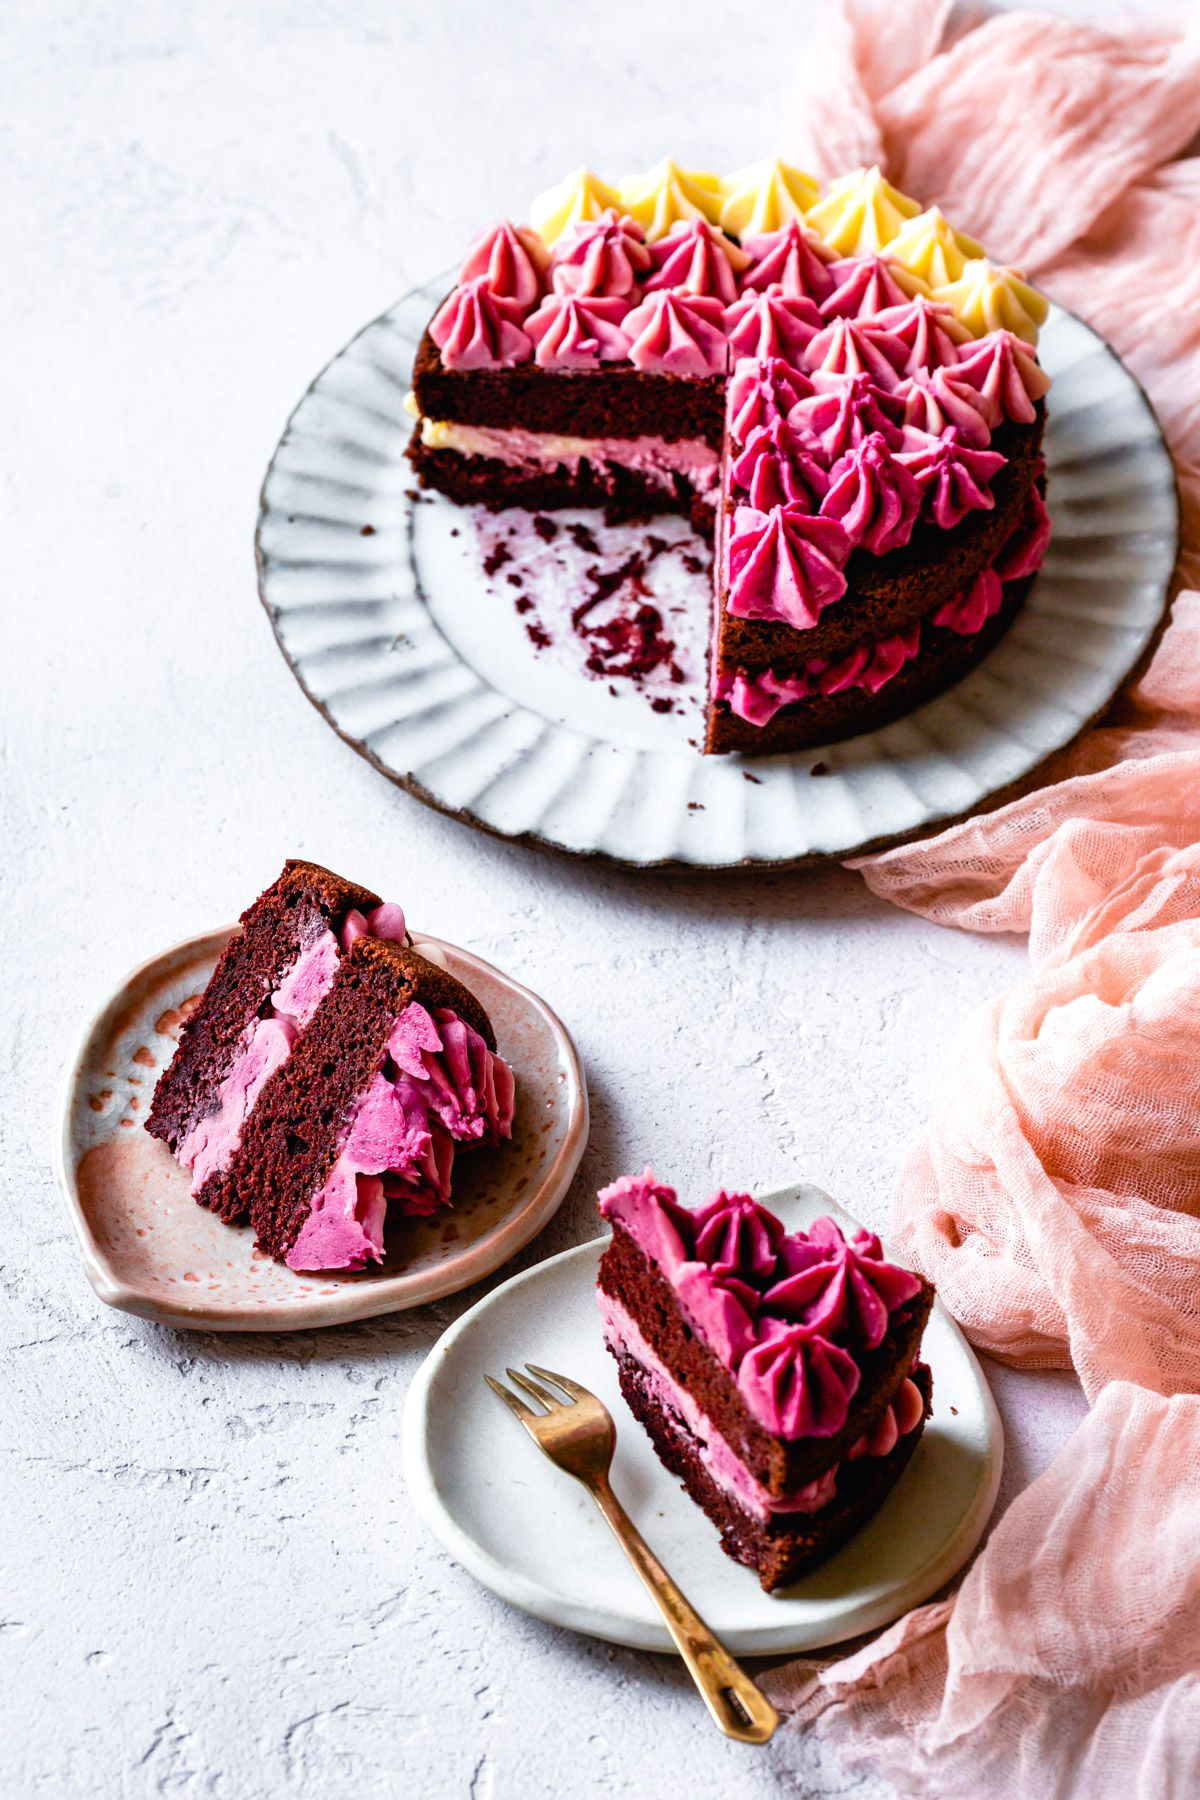 This All Natural Gluten Free Red Velvet Cake Gets Its Burgundy Hue From Pureed Beets Beet Cream Cheese Frosting Piped In A Prett Recipes Desserts In 2019